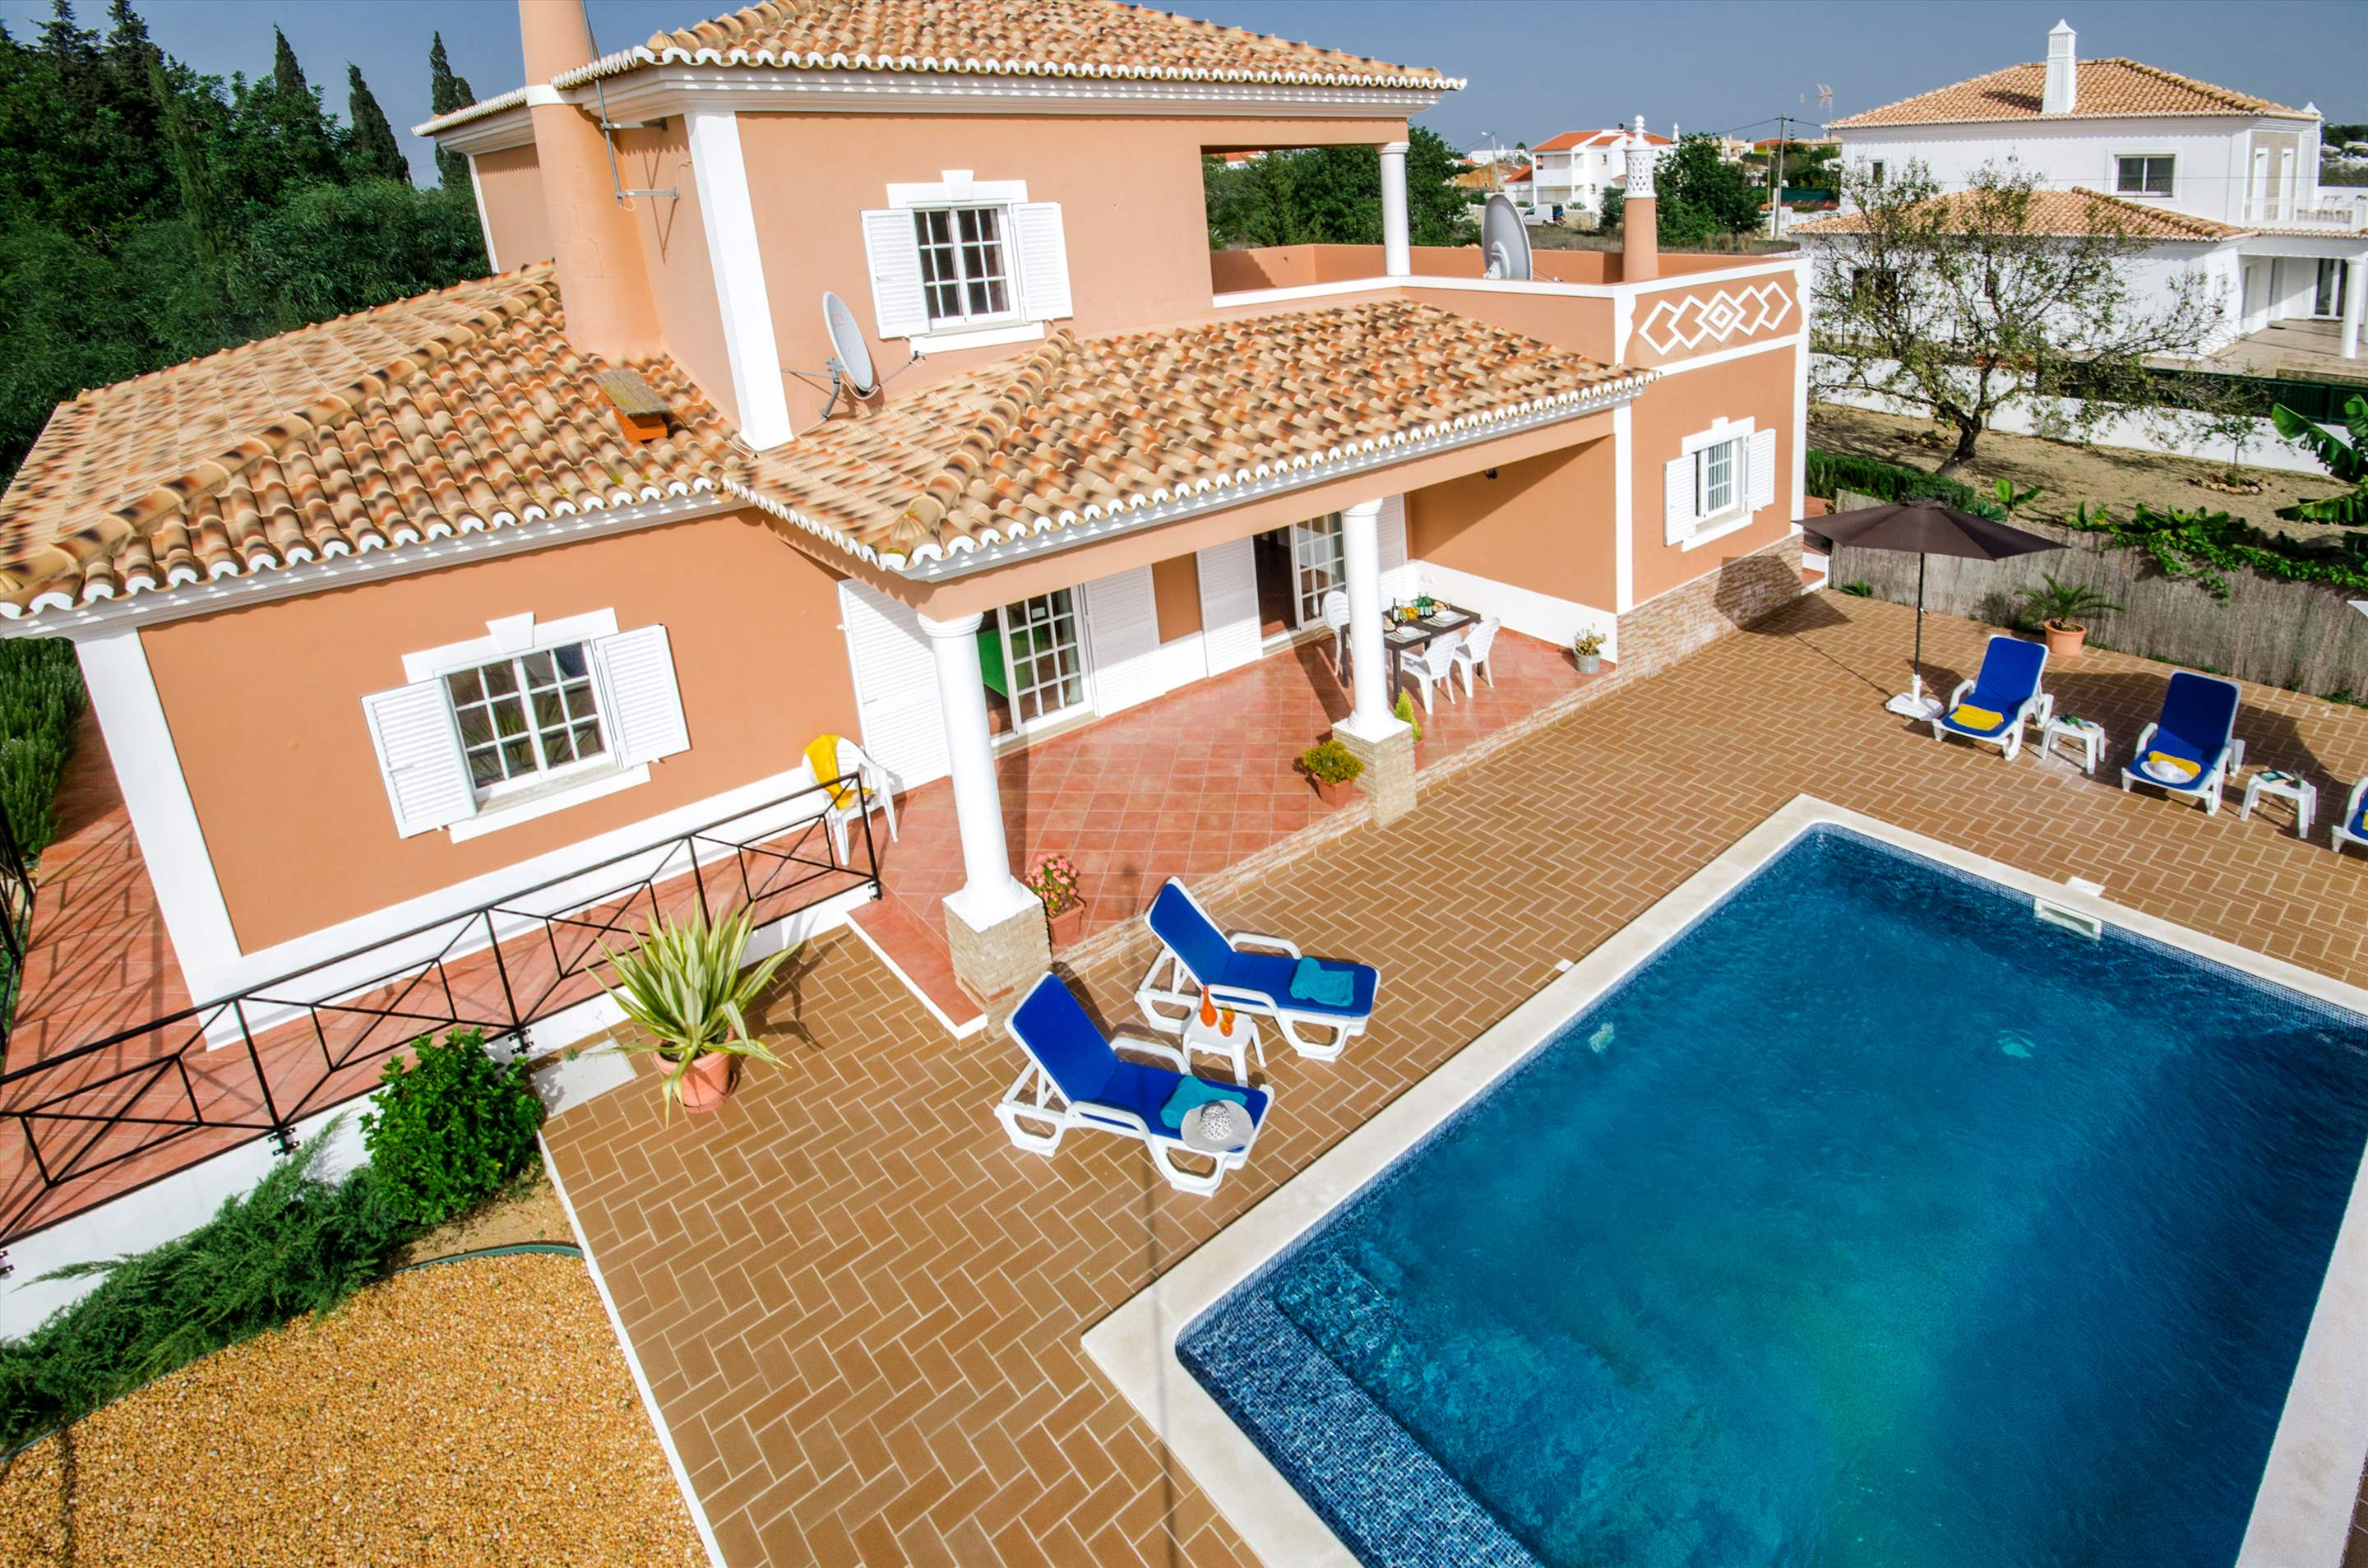 Casa Laura, 3 bedroom villa in Gale, Vale da Parra and Guia, Algarve Photo #14